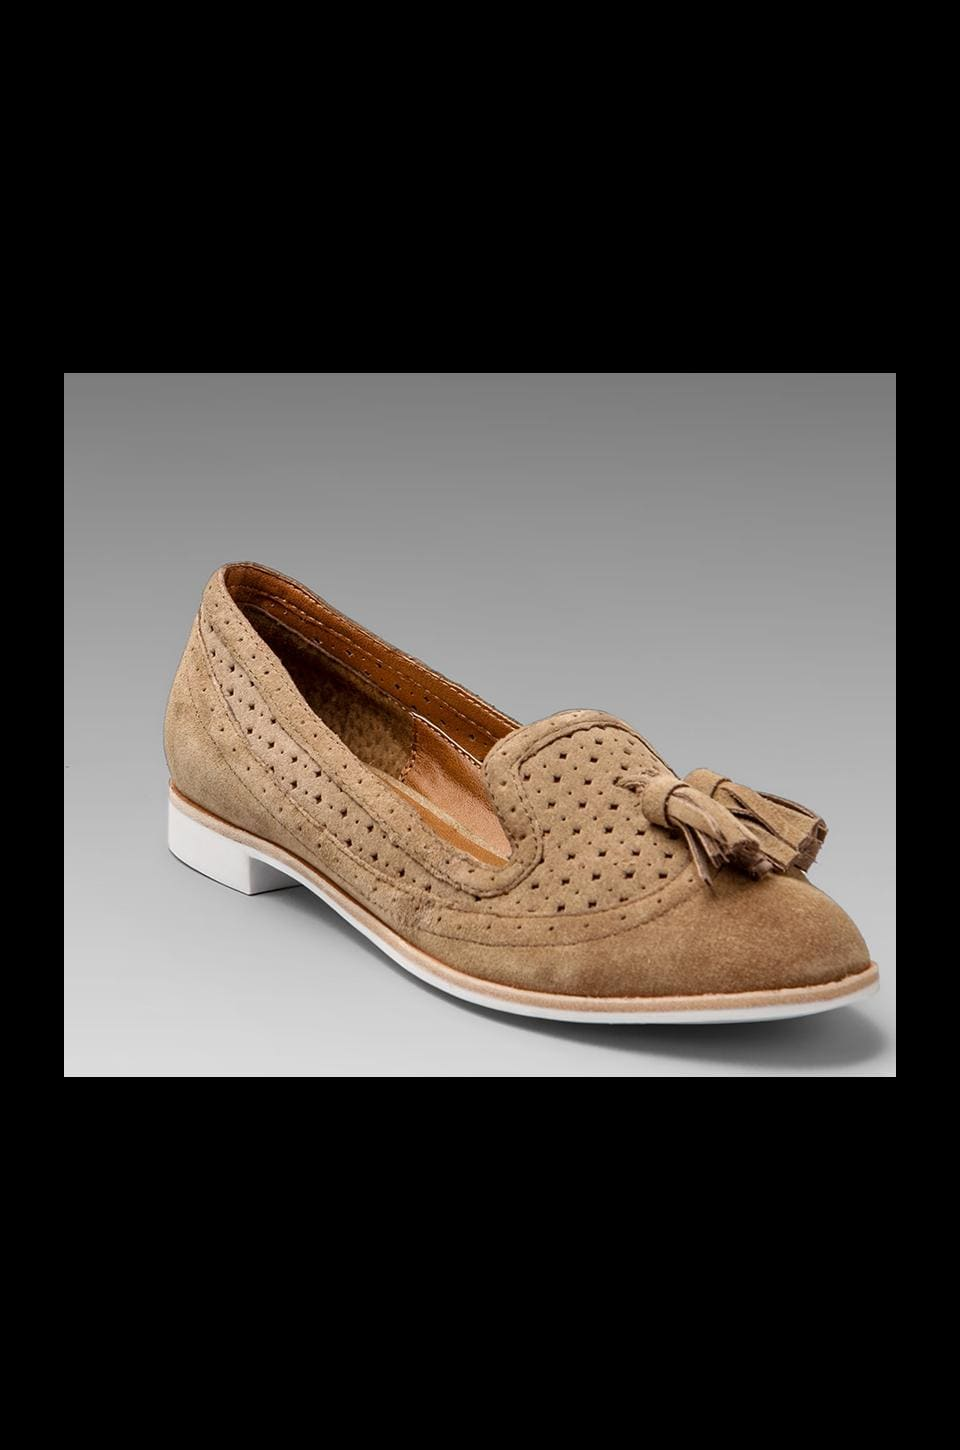 Dolce Vita Macao Loafer in Taupe